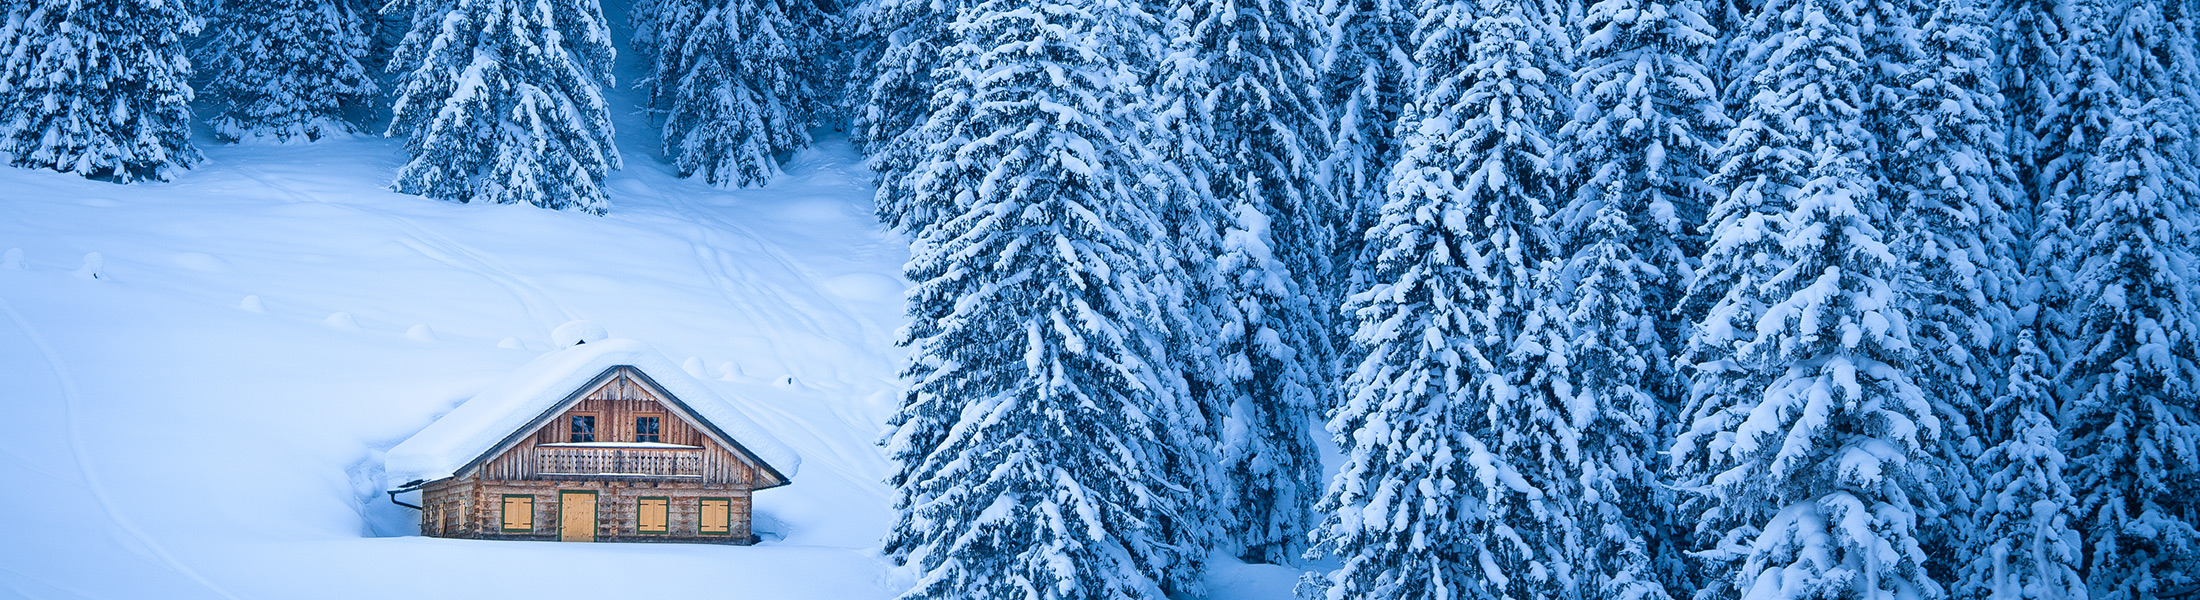 Ski lodge surrounded by conifers in the snow